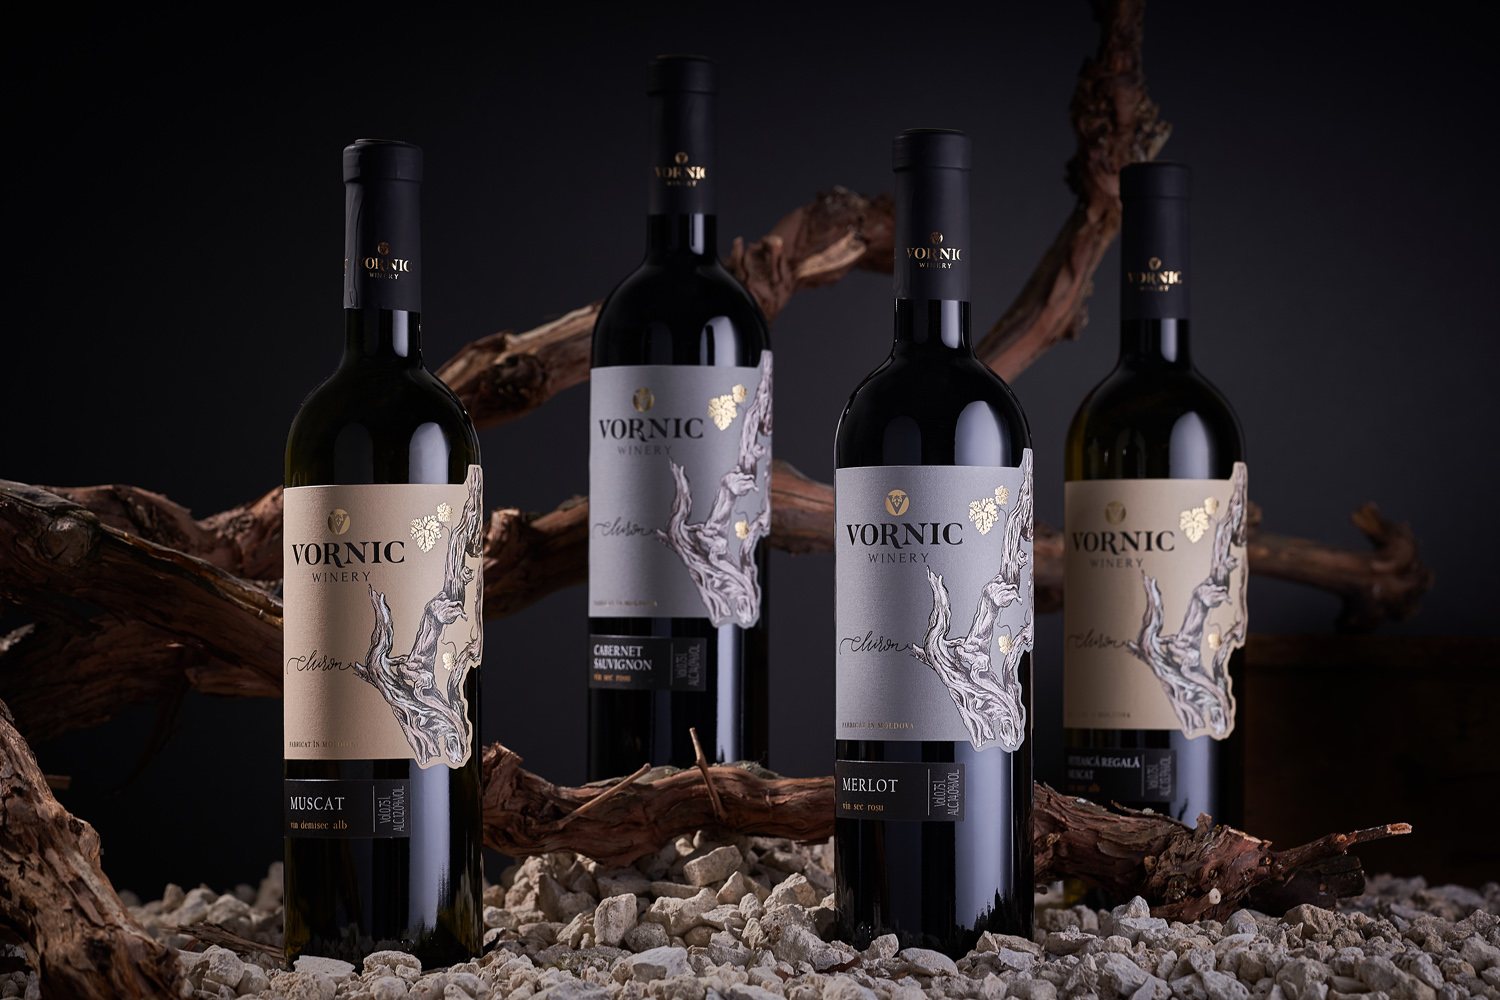 Family Winery Label Design – Vornic Winery